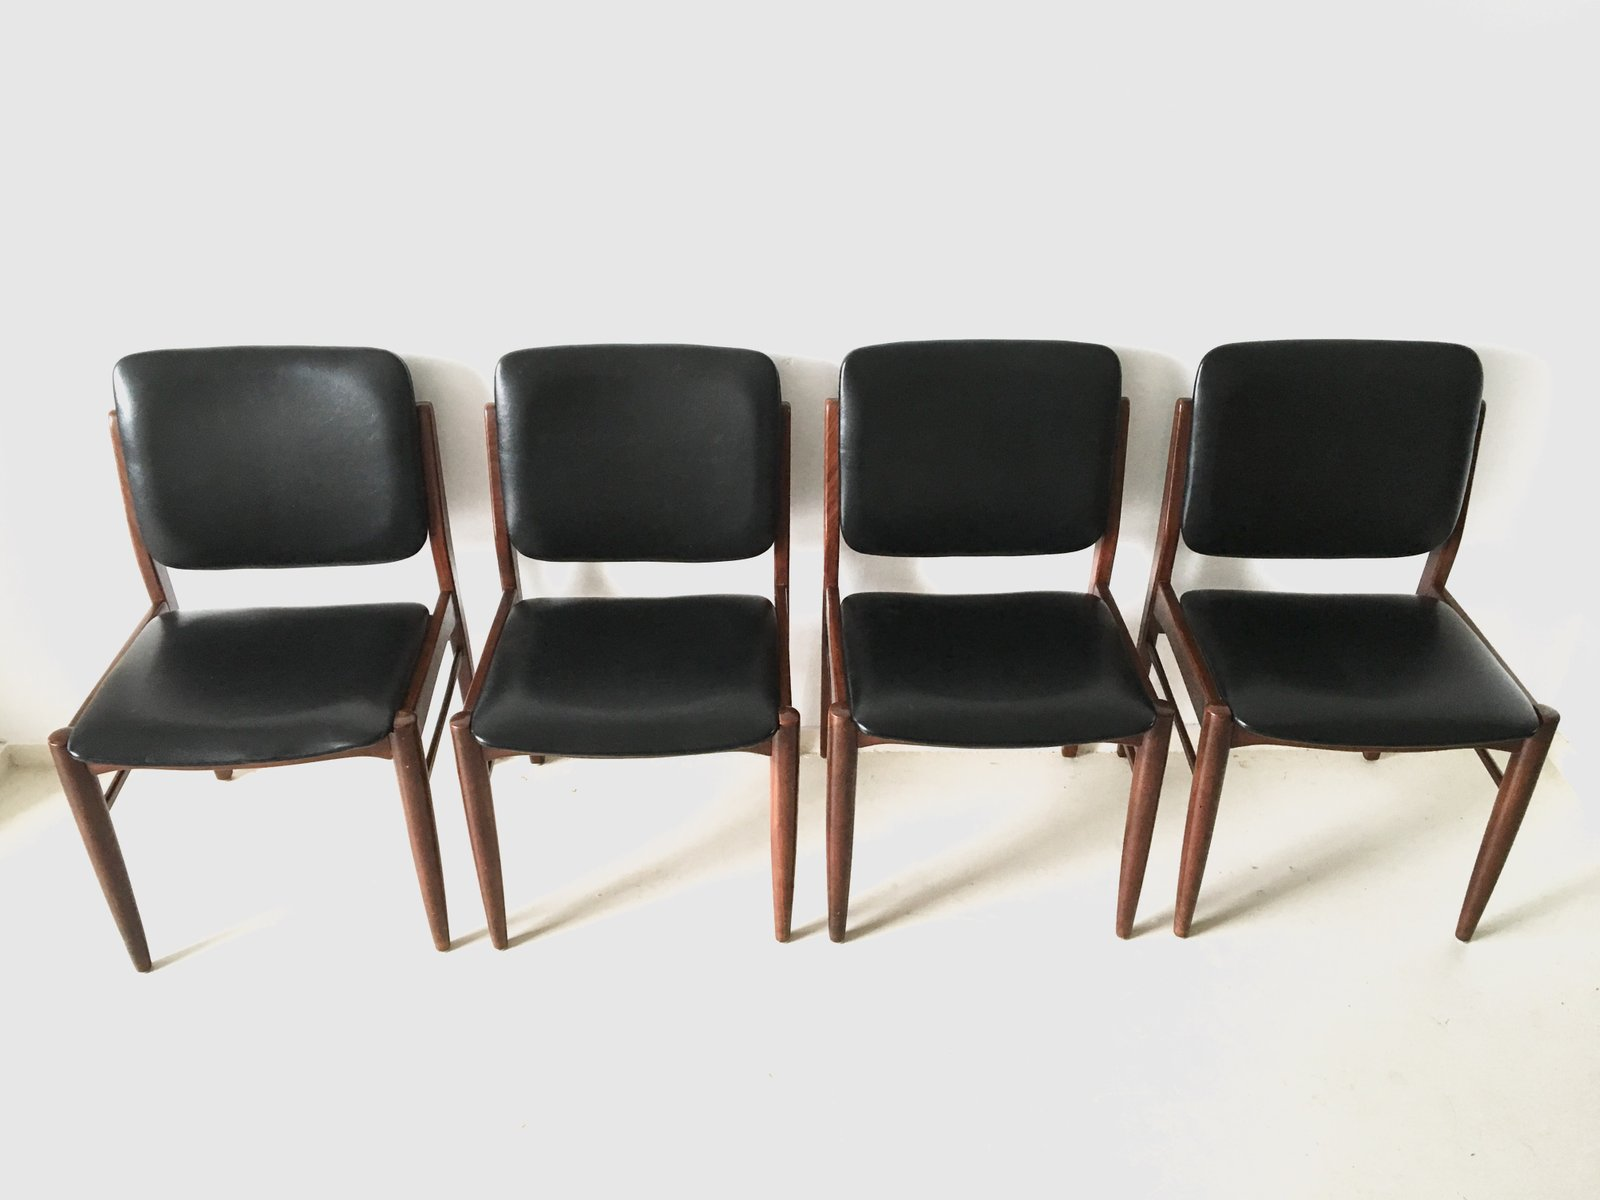 set of 4 dining chairs swivel chair toronto vintage danish 1960s for sale at